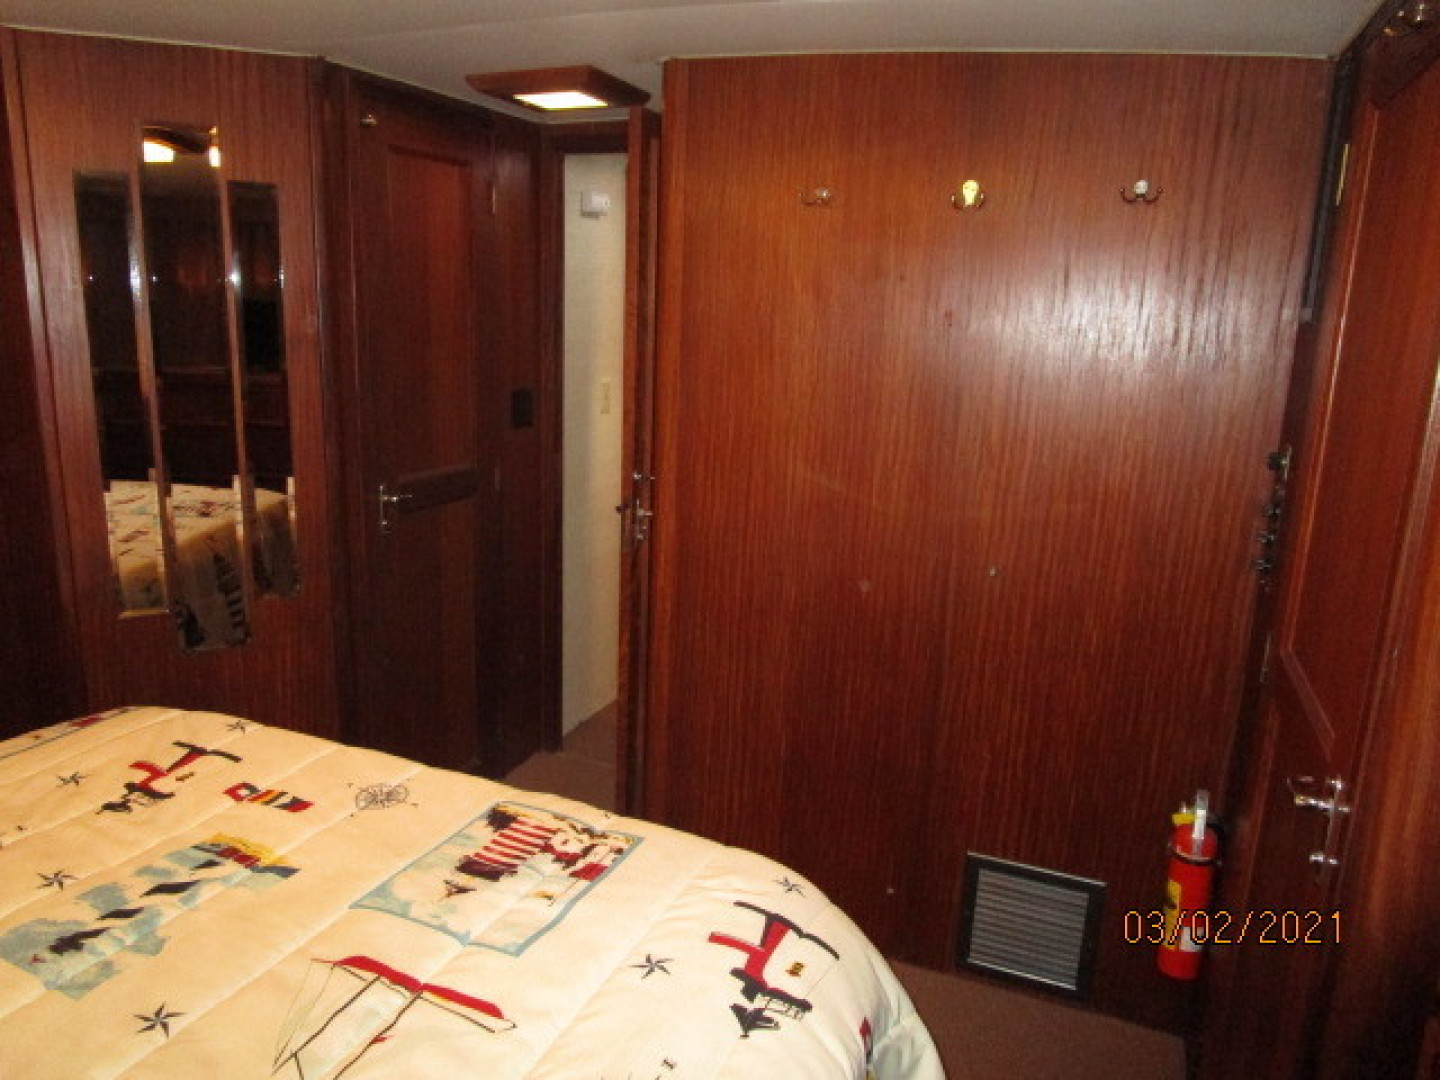 Hatteras-48 1981-Partner Ship Carolina Beach-North Carolina-United States-48 Hatteras master stateroom forward-1629292 | Thumbnail